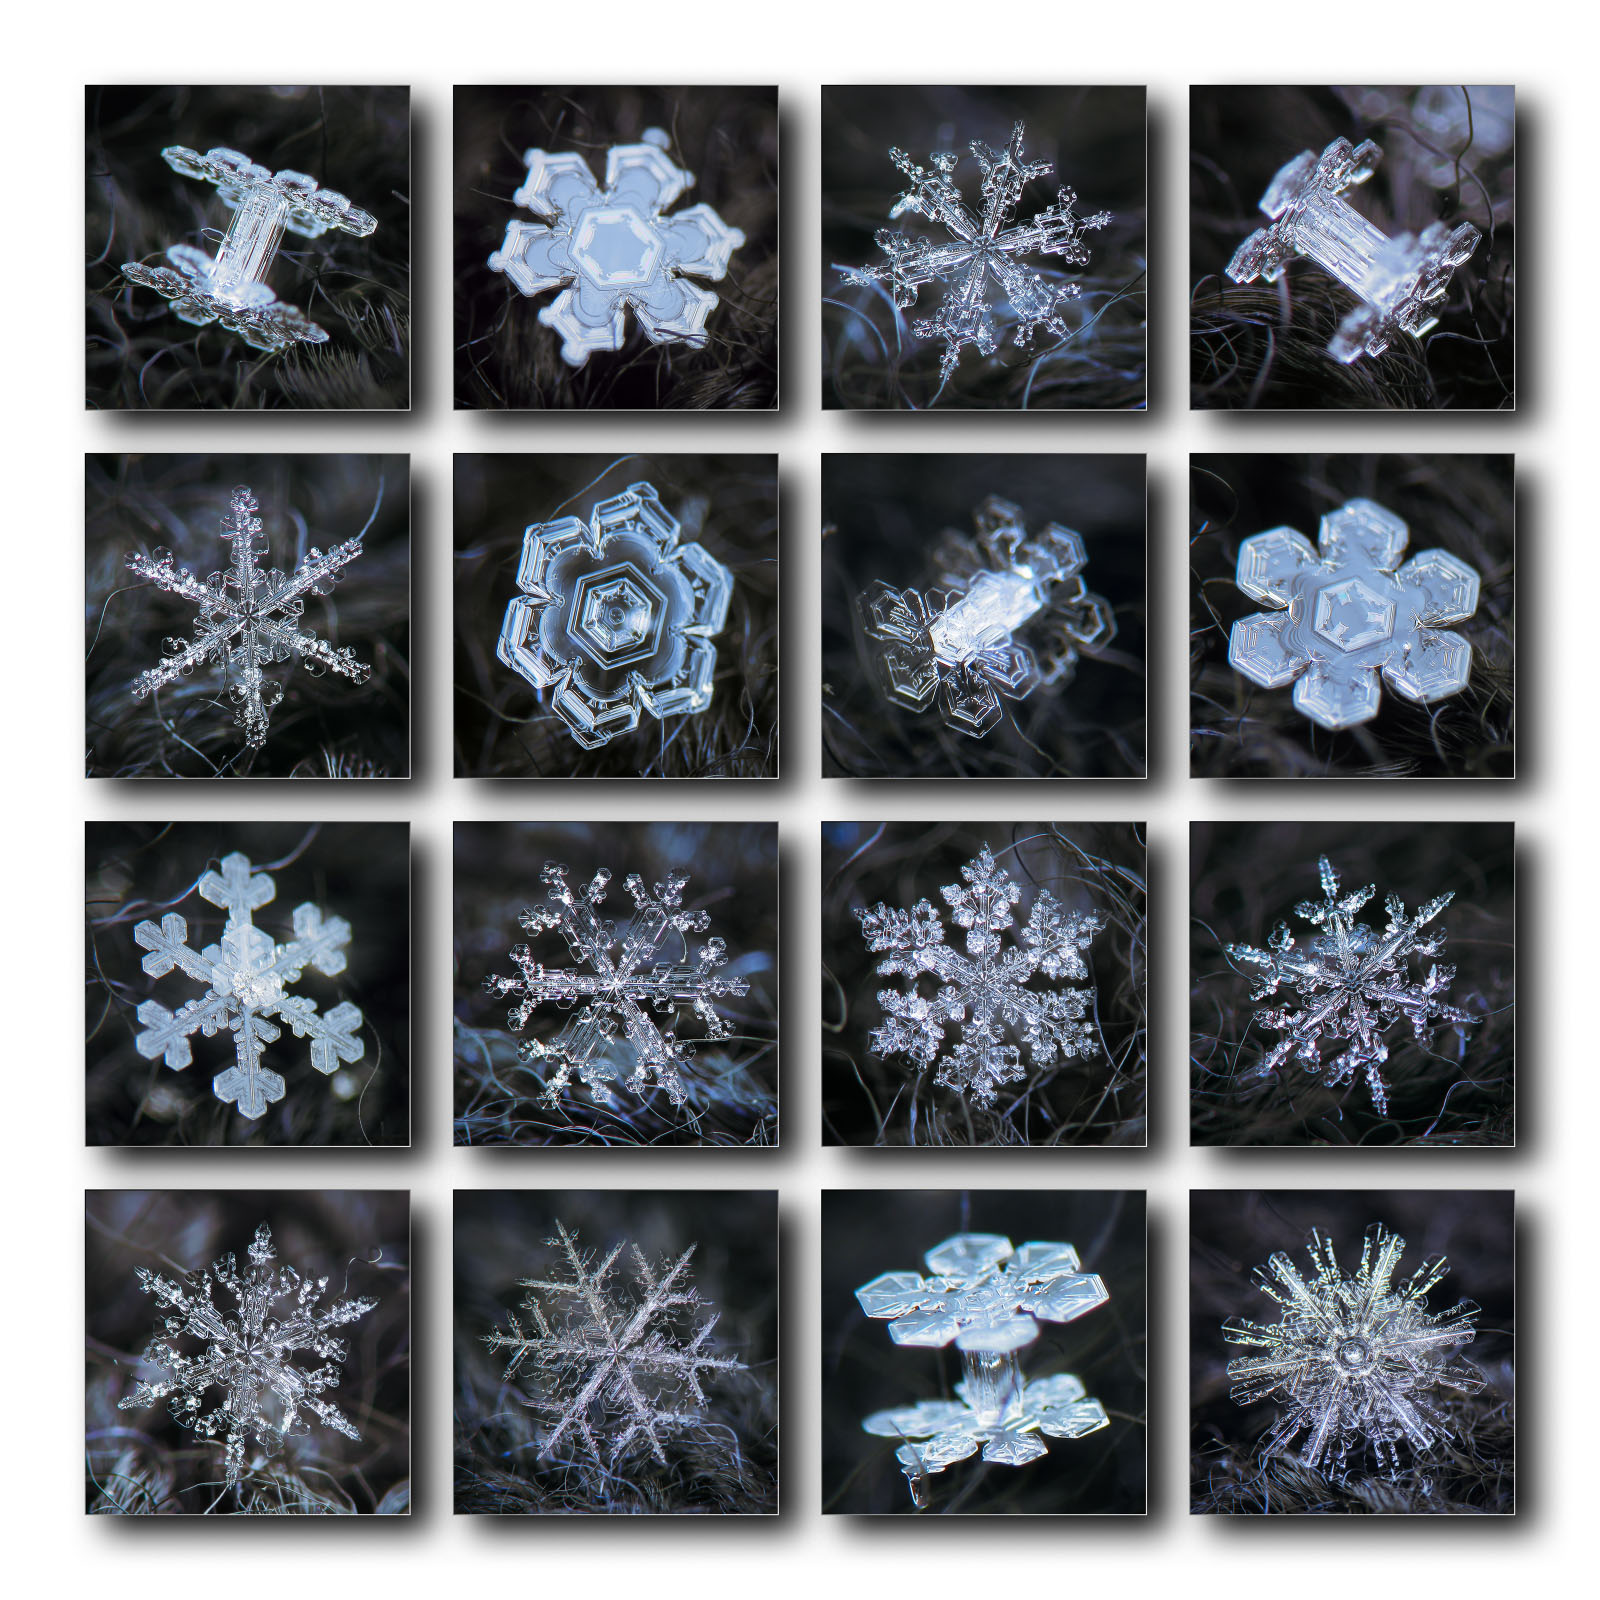 Collection of 16 snowflakes, four variants, full resolution lossless images - downloads at patreon.com/alexeykljatov